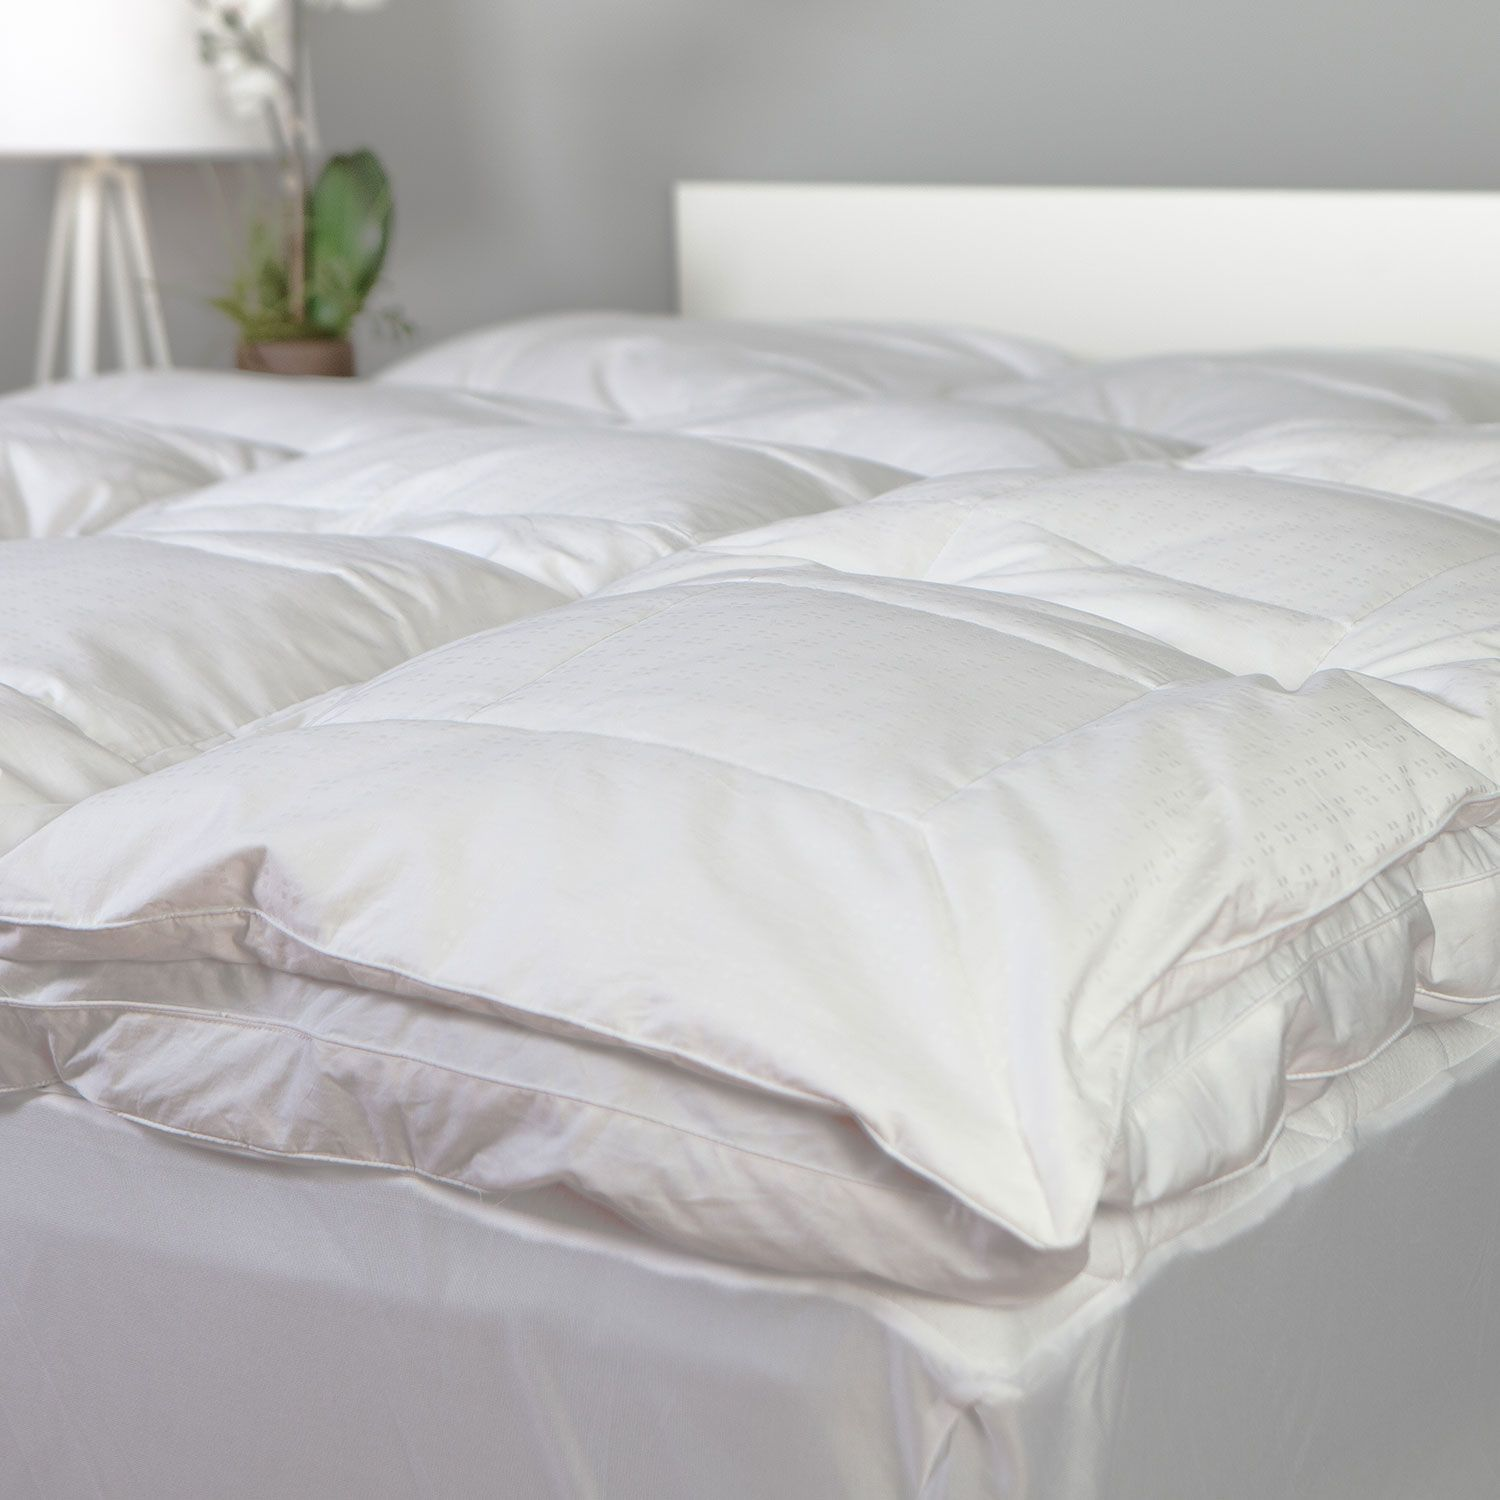 Homeluxe Luxury Feather Bed Various Sizes Sam S Club Feather Bed Bed Linen Design Bed